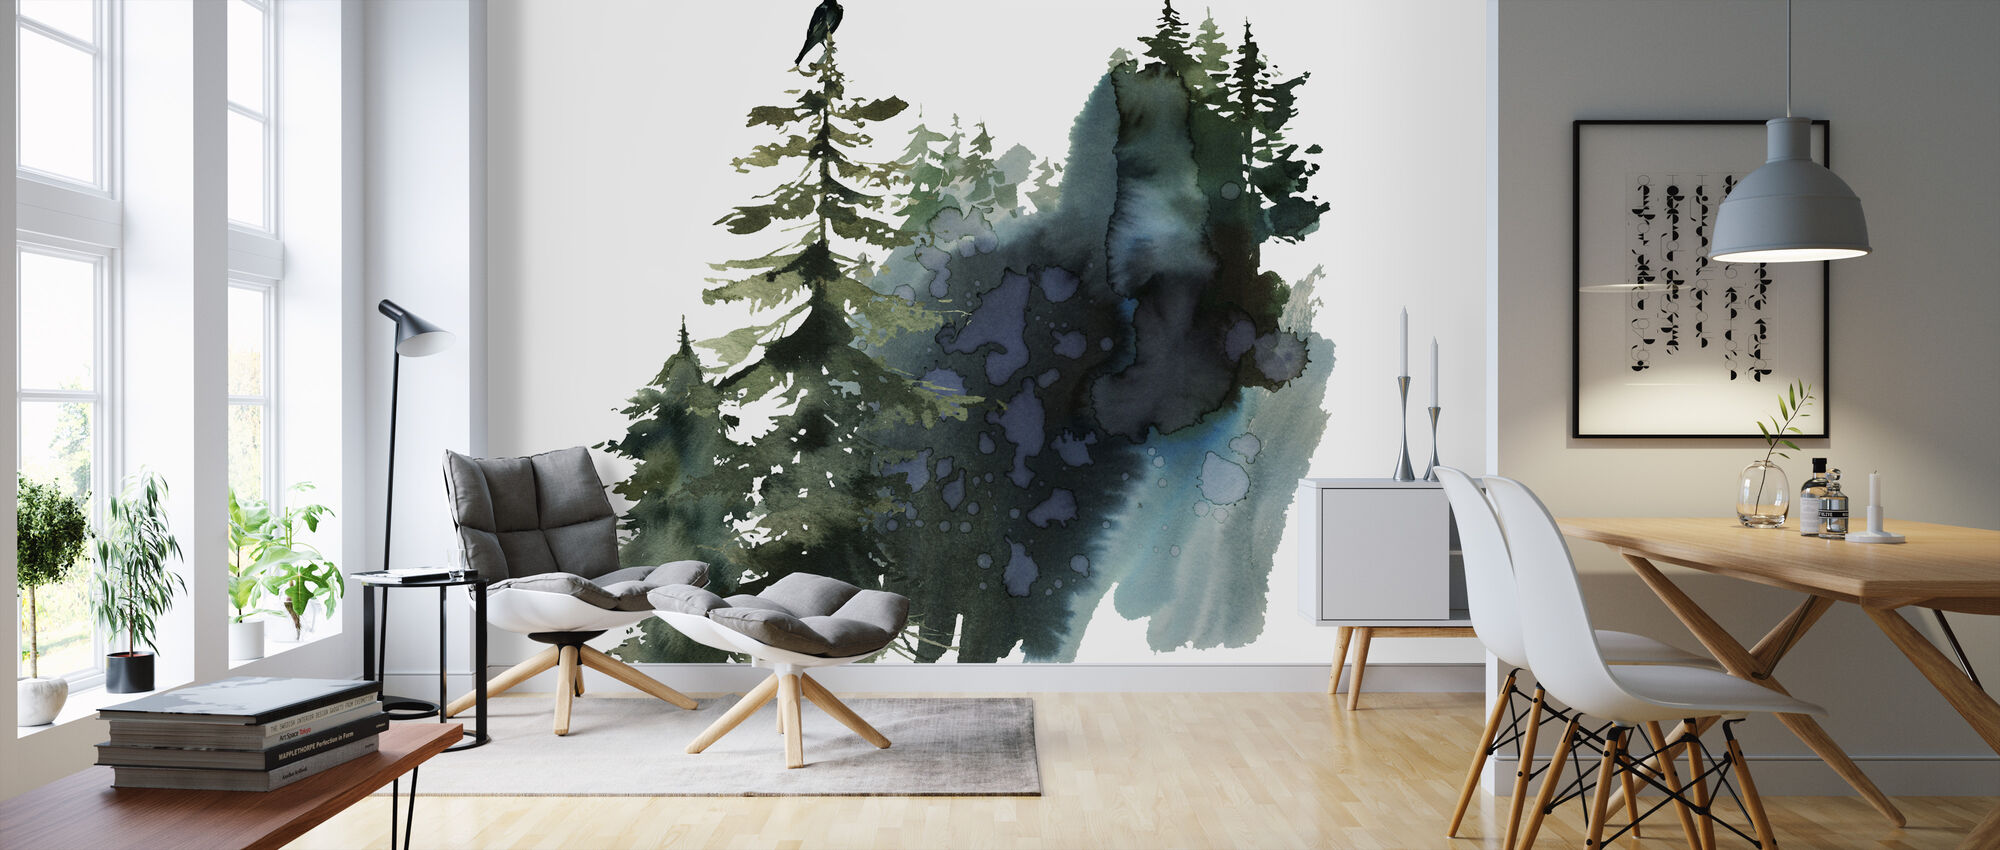 Watercolor Crow Forest - Wallpaper - Living Room